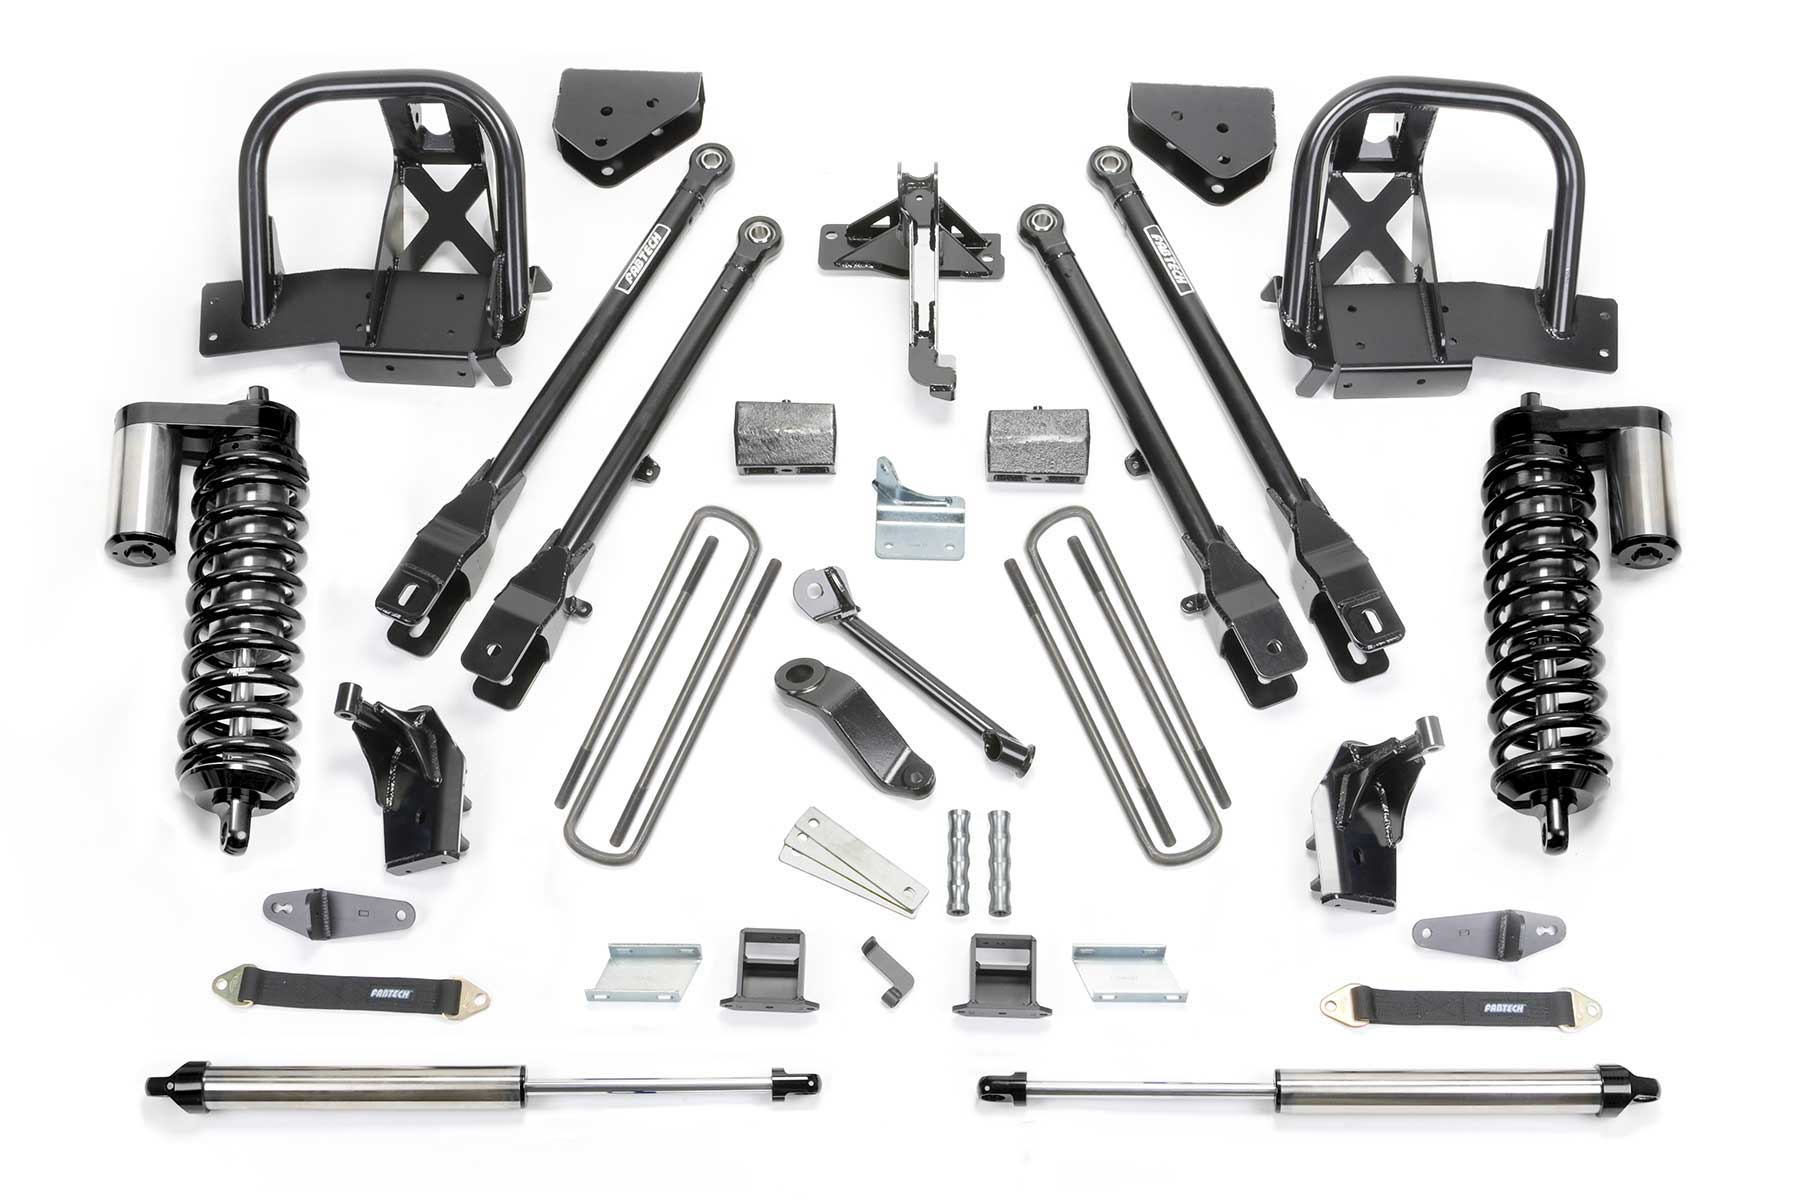 2016 17 Nissan Titan Xd 4wd Uniball Upper Control Arms additionally 4 Link Systems W Coil Springs 7 Inch Systems besides 6 Inch Systems 2008 10 F450 F550 together with 10 Inch Systems together with  on torsion bars 02 ram 1500